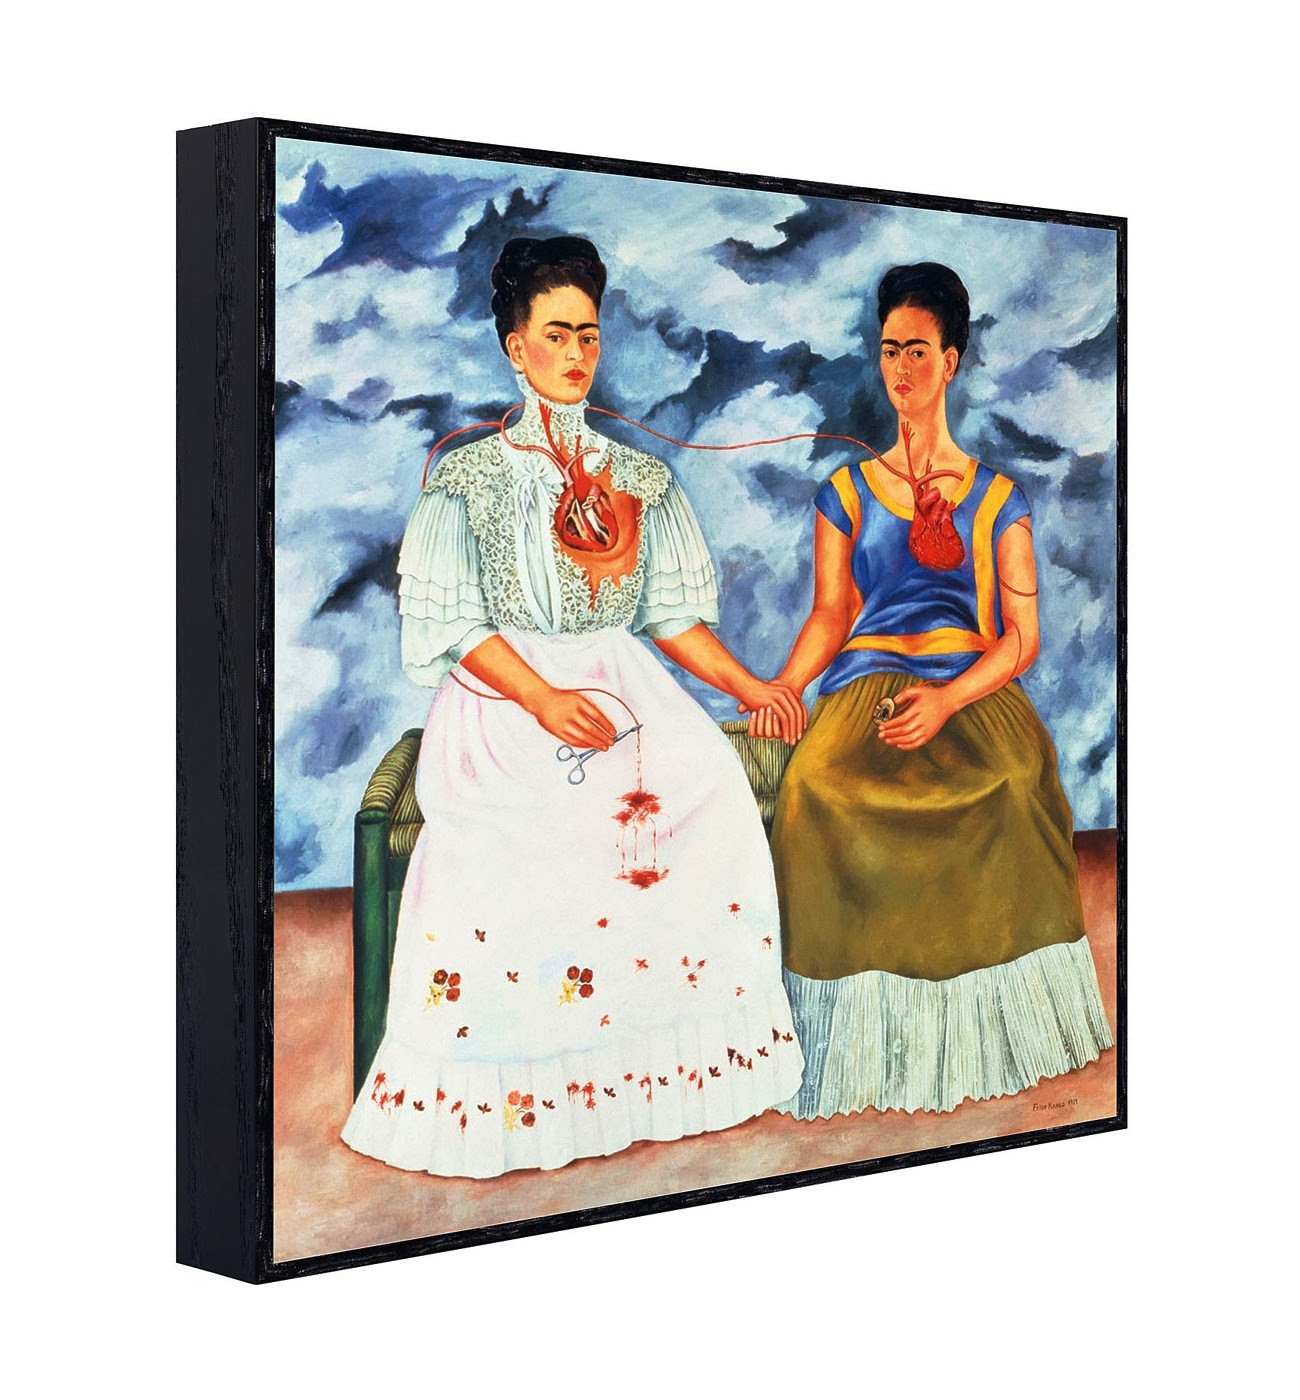 https://www.touchofmodern.com/sales/20th-century-masters/frida-kahlo-the-two-fridas-1939?share_invite_token=WQ3PD6V0